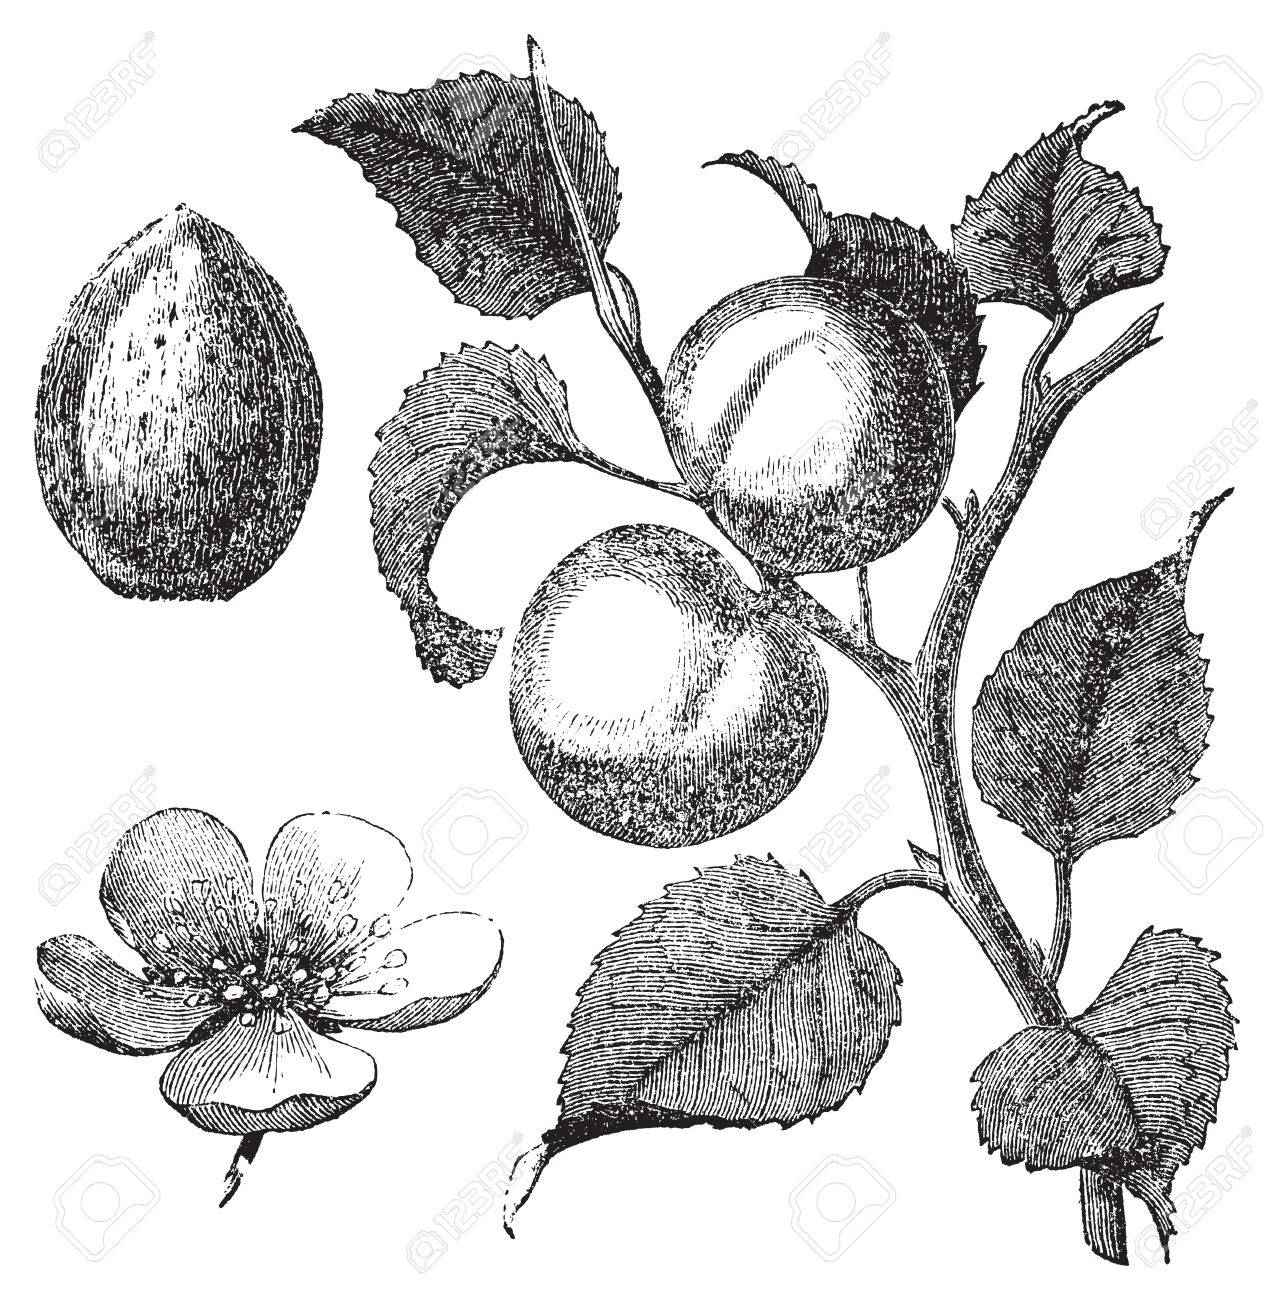 Vintage illustration of an apricot tree also showing the apricot vector vintage illustration of an apricot tree also showing the apricot kernel and flower vector live trace from a scan of an engraving from trousset thecheapjerseys Gallery